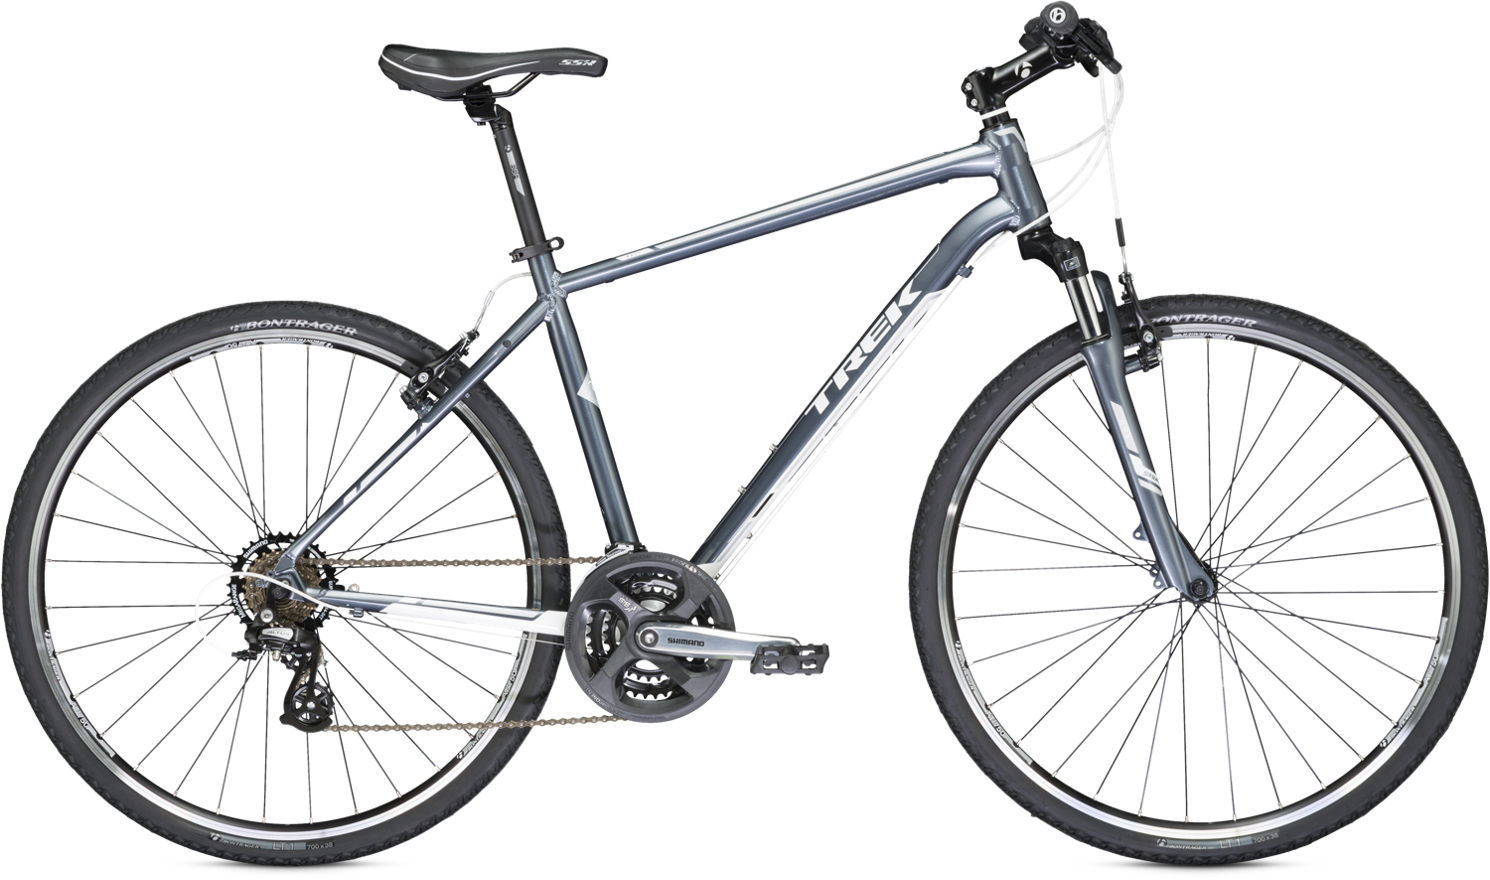 acura gary force html with 2014 Trek Bicycles on Balaban Imdb besides 2014 Trek Bicycles in addition City Of Long Beach Towing Auction also Acura Mdx Engine Heater together with Immediate Response.